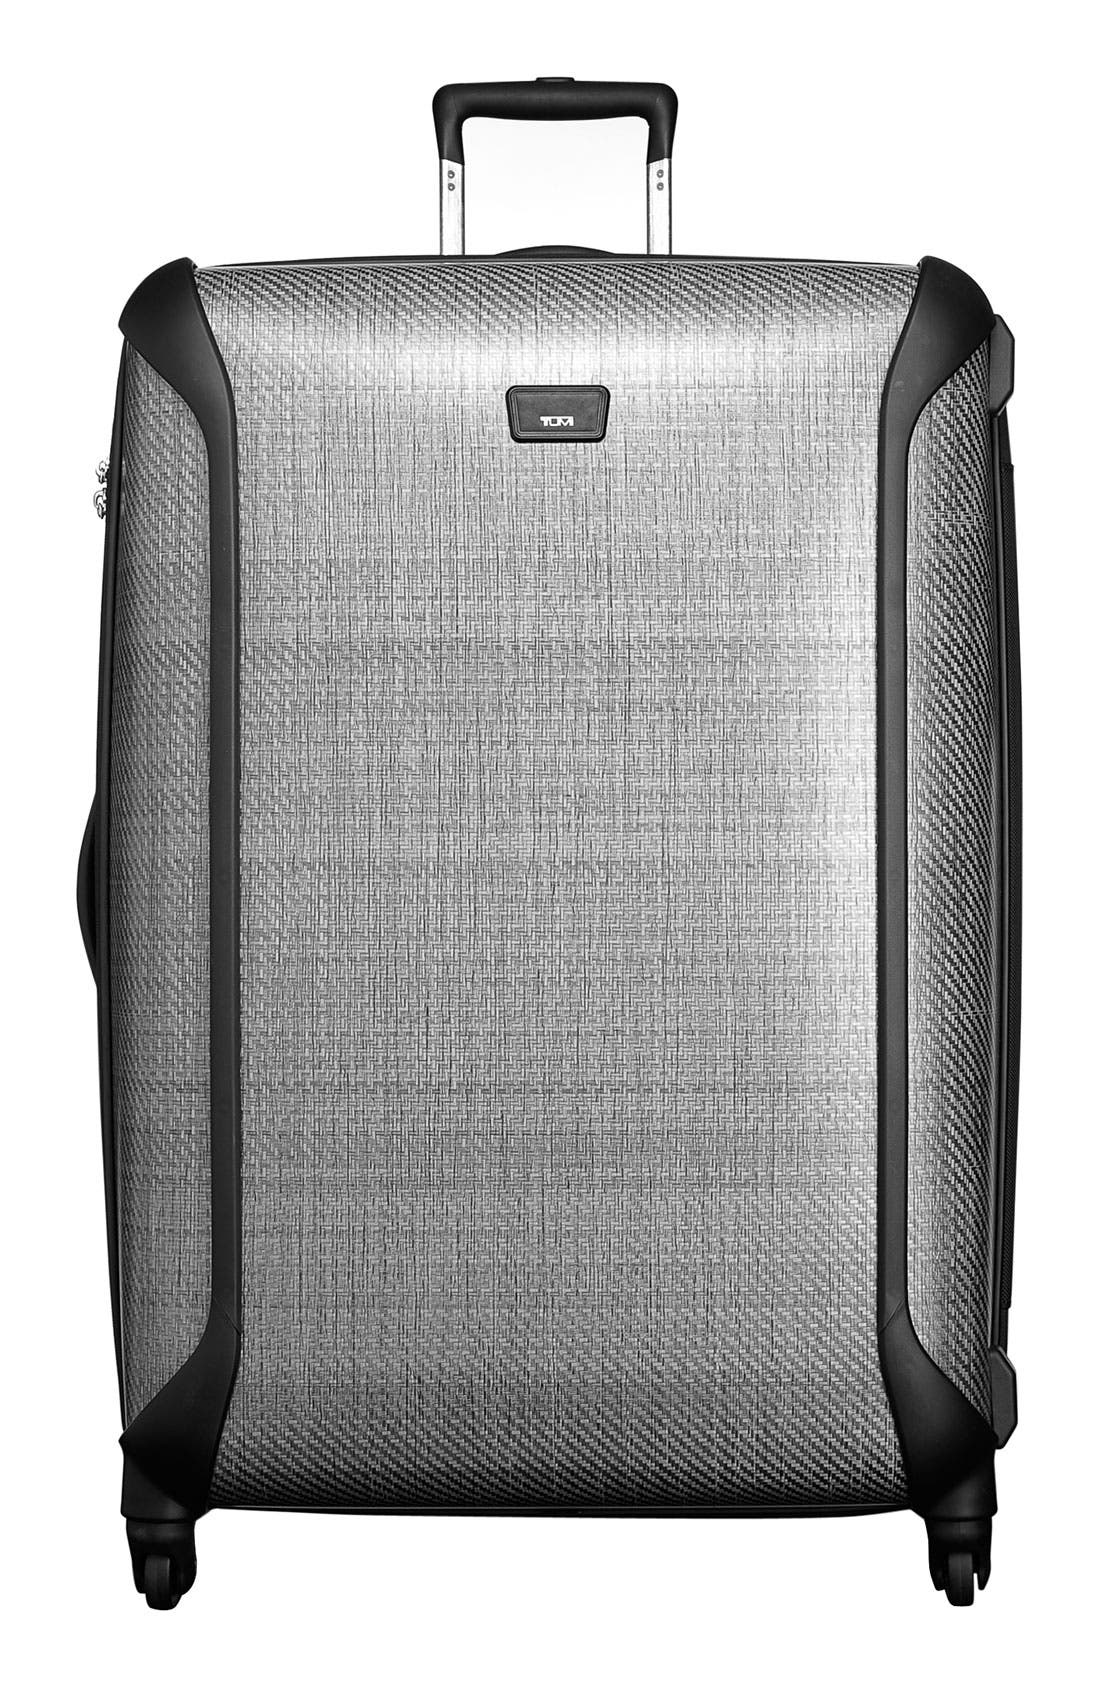 Alternate Image 1 Selected - Tumi 'Tegra-Lite™' Extended Trip Packing Case (33 Inch)